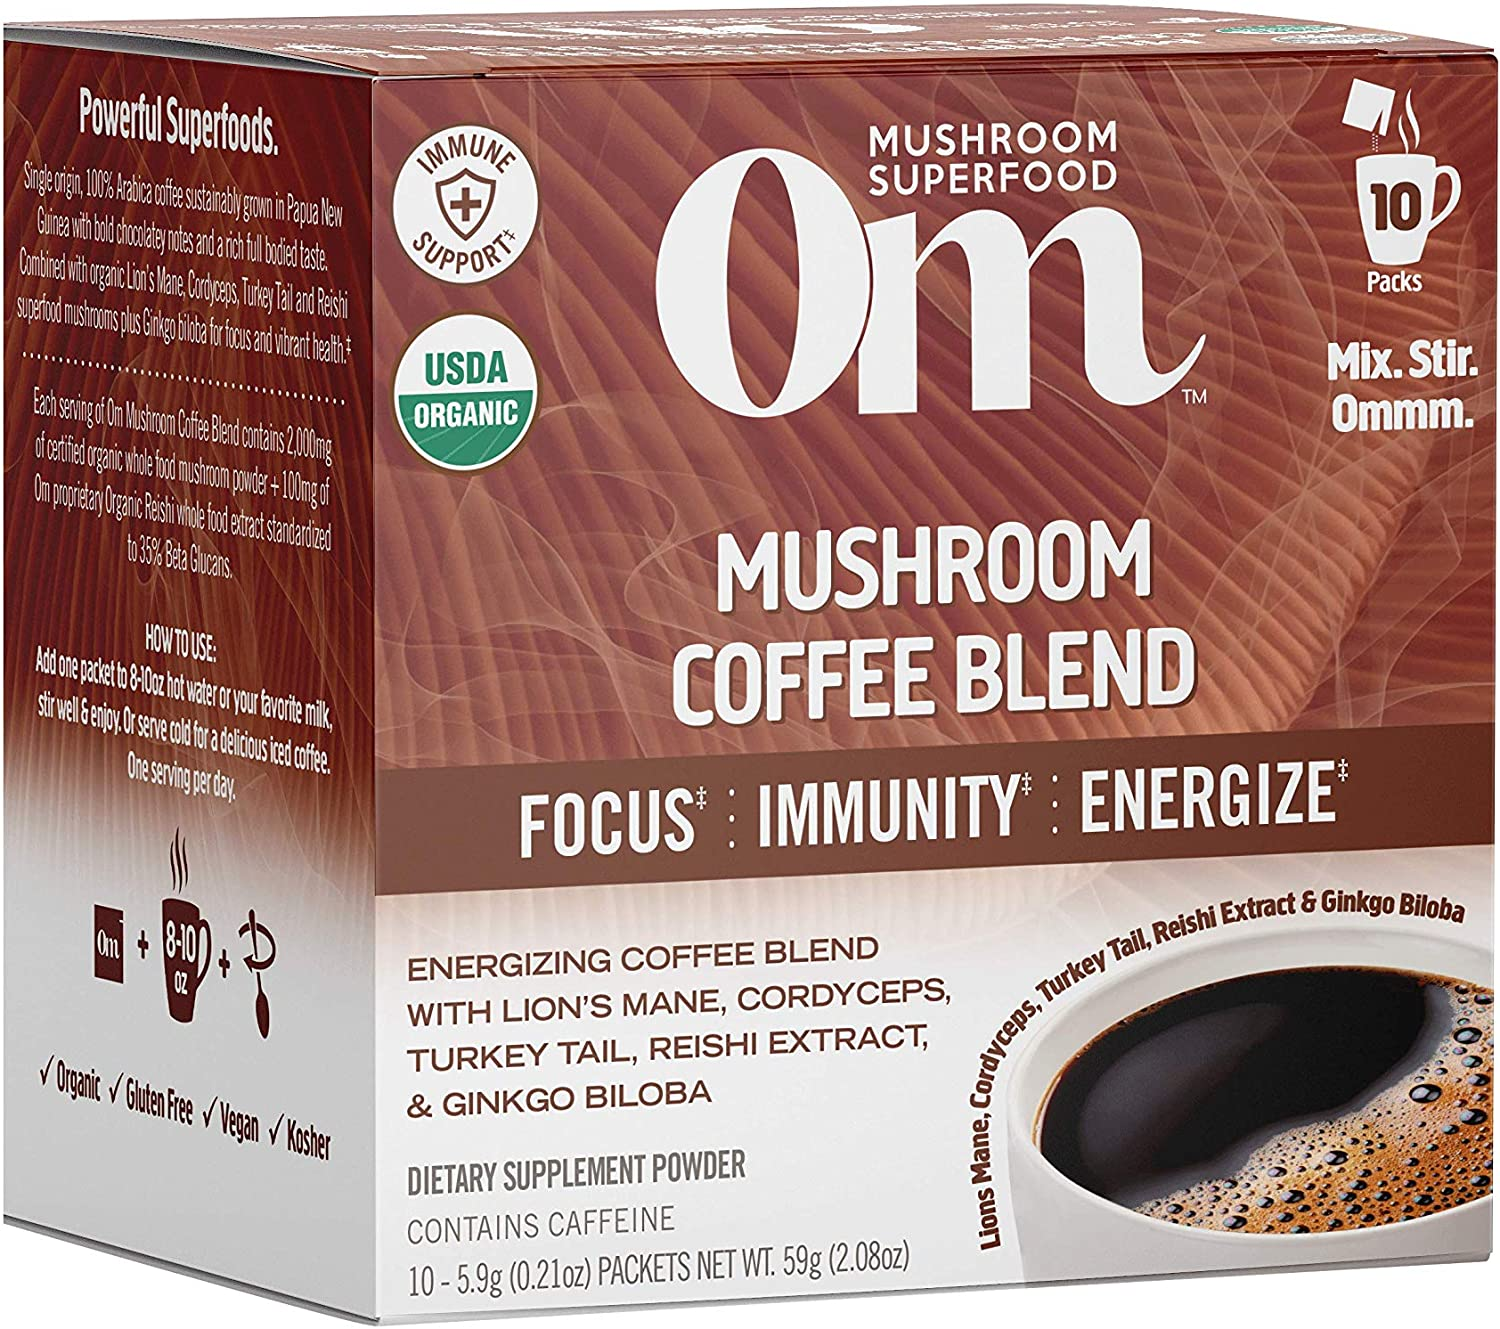 Om Mushroom Superfood Coffee, Lions Mane, Cordyceps, Turkey Tail, Reishi Extract, Ginkgo Biloba, Energy, Focus & Immune Support Supplement, 2.82 Ounce (Packets), 10 Count